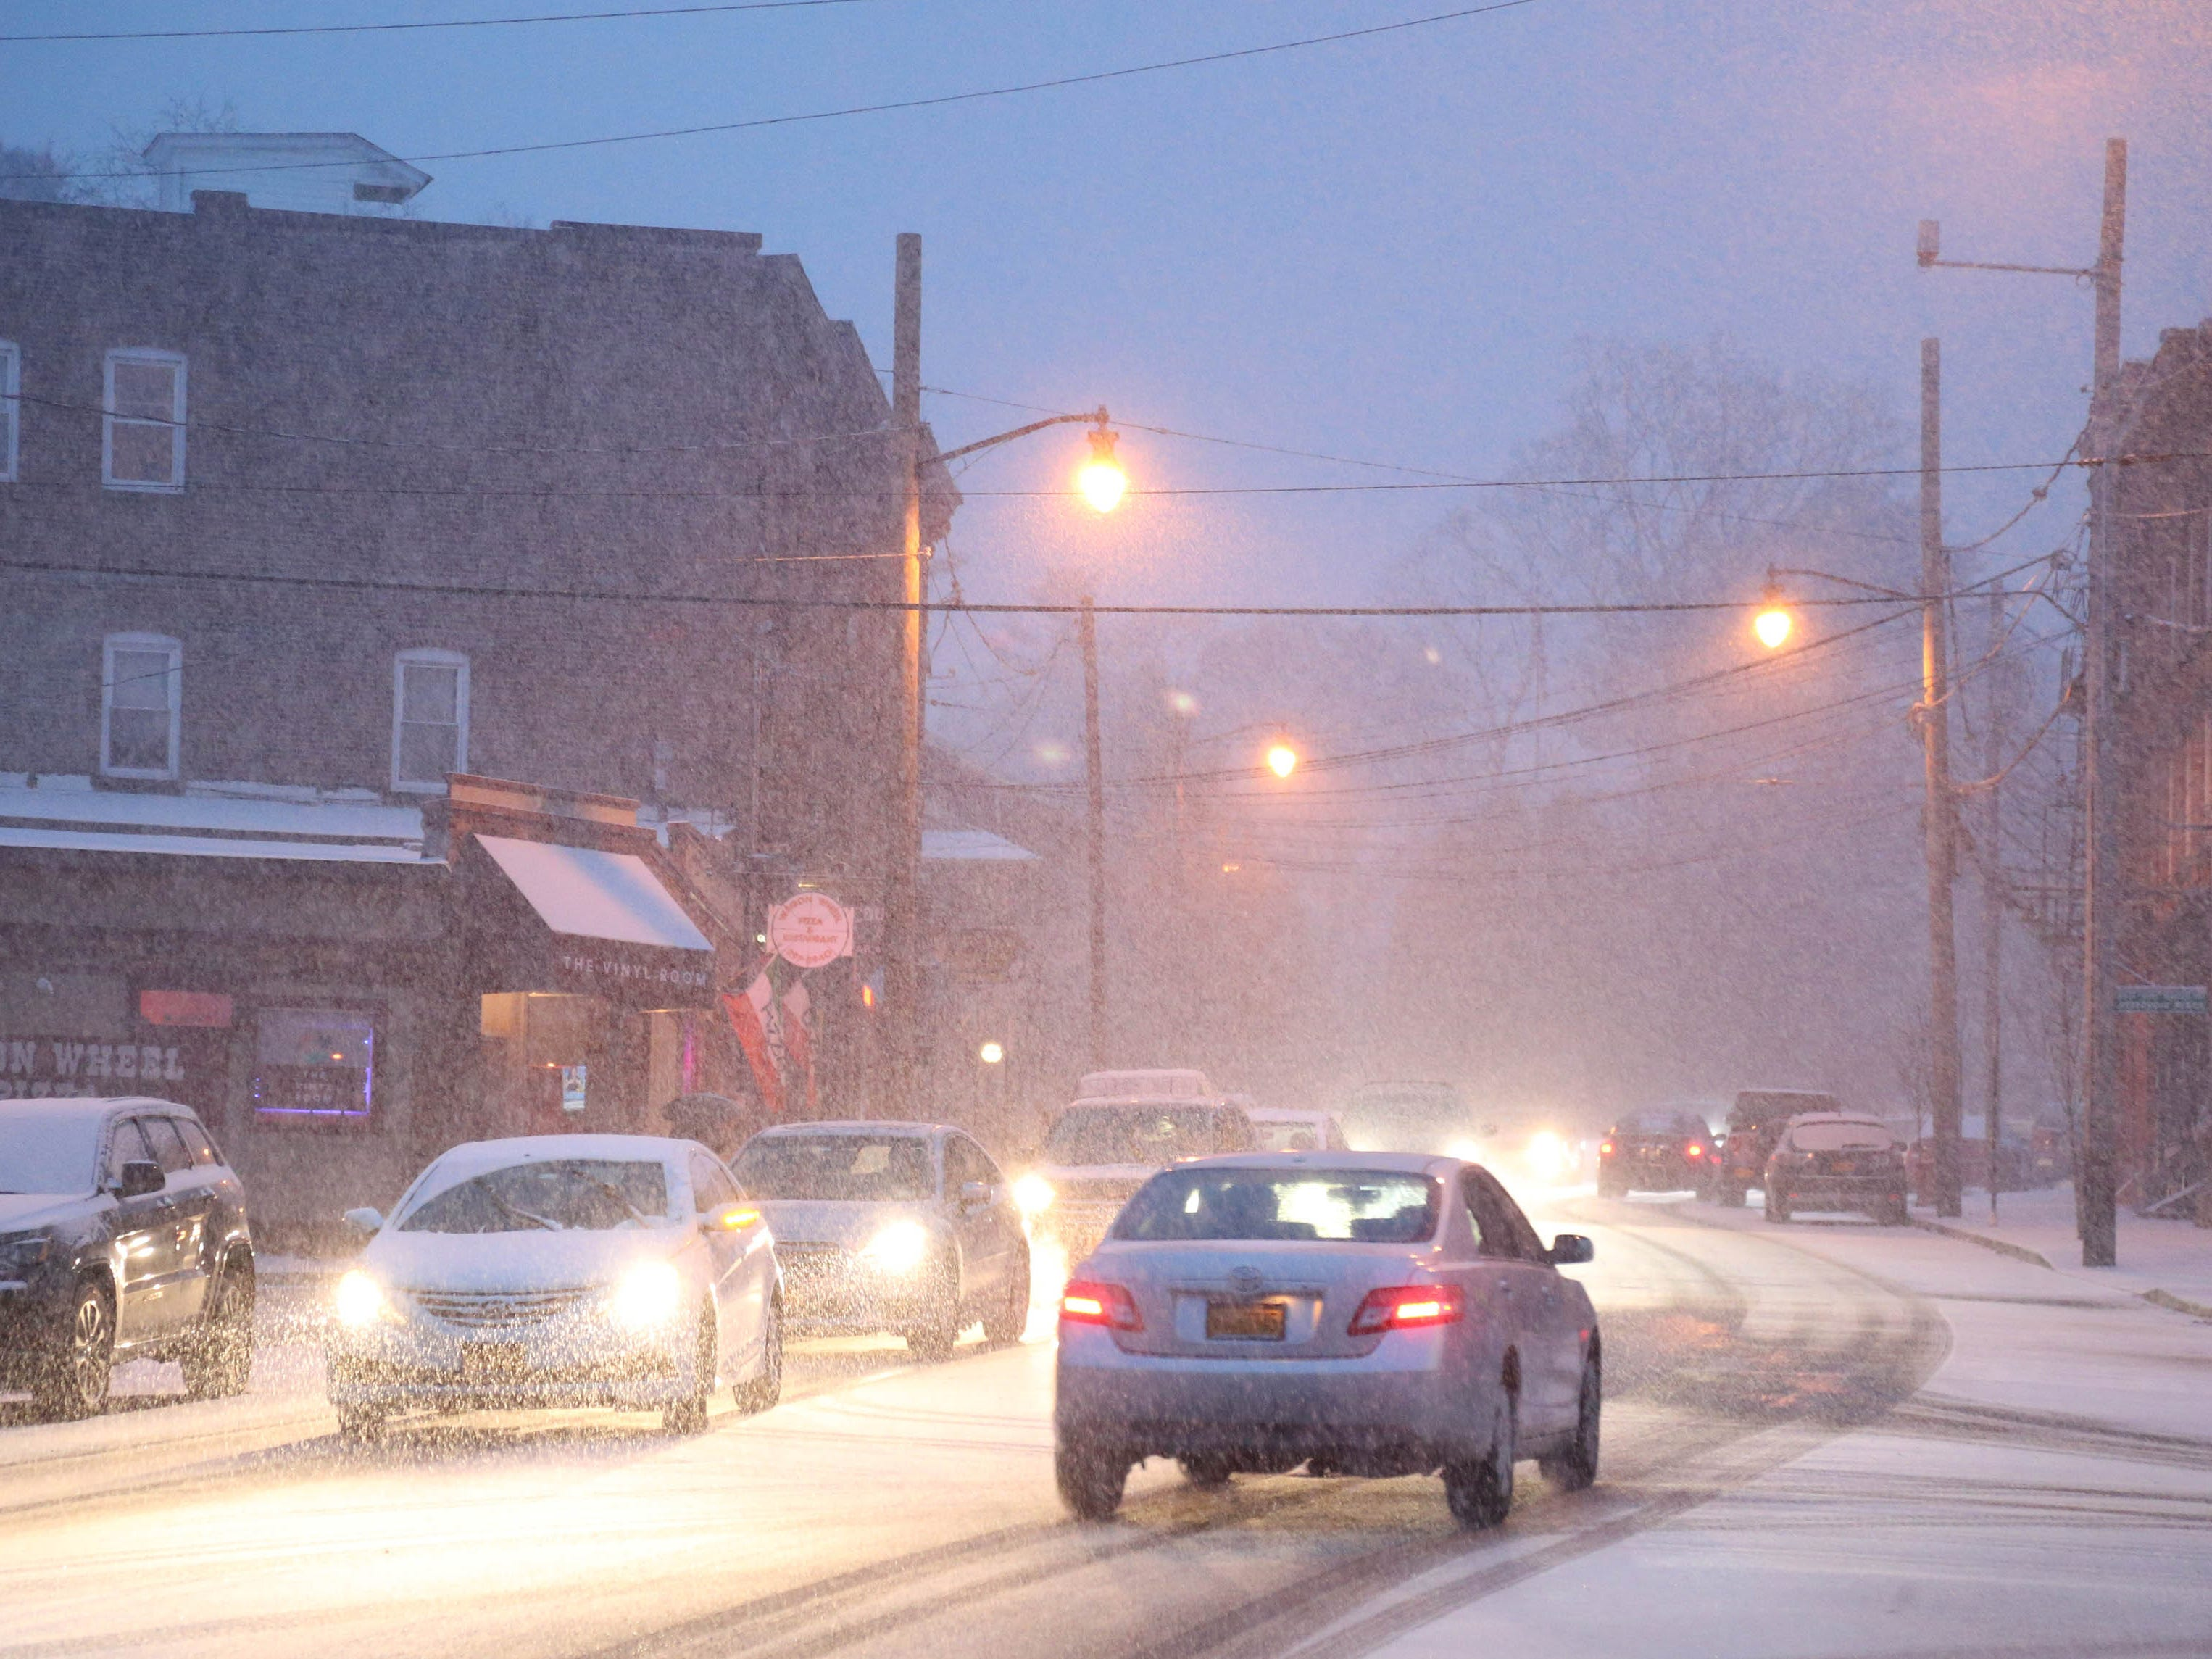 Traffic navigates its way along Main Street in the Village of Wappingers Falls, N.Y. as snow begins to accumulate on Nov. 15, 2018.